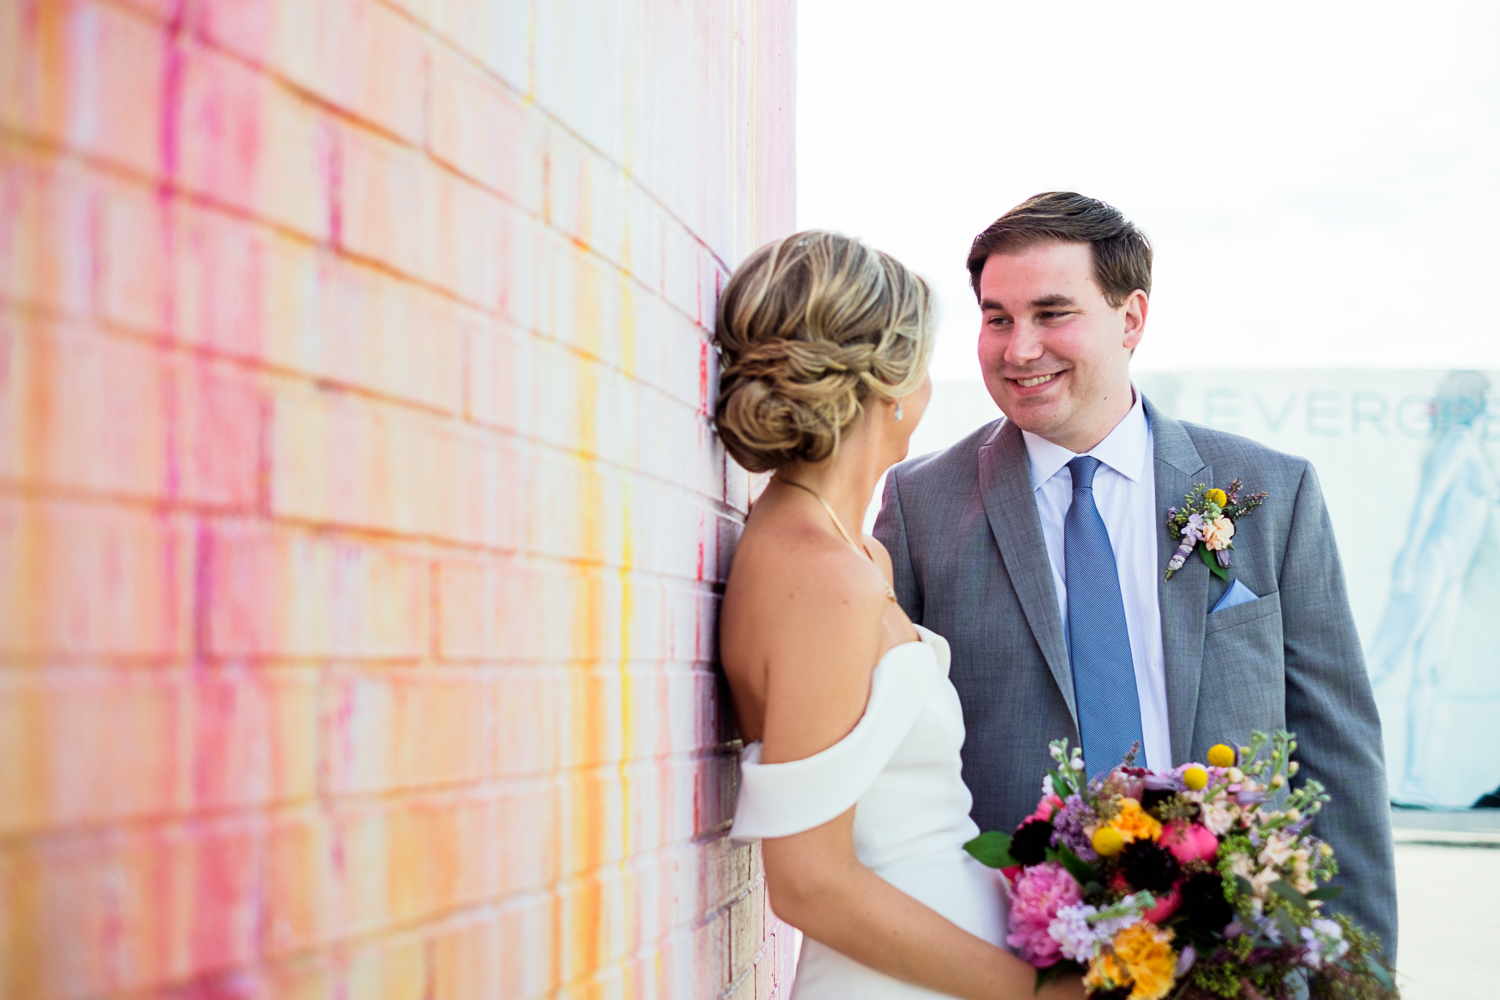 Jessenia Gonzalez Photography-Wynwood-Miami-Wedding-Bridesmaids-groomsmen (39 of 40).jpg